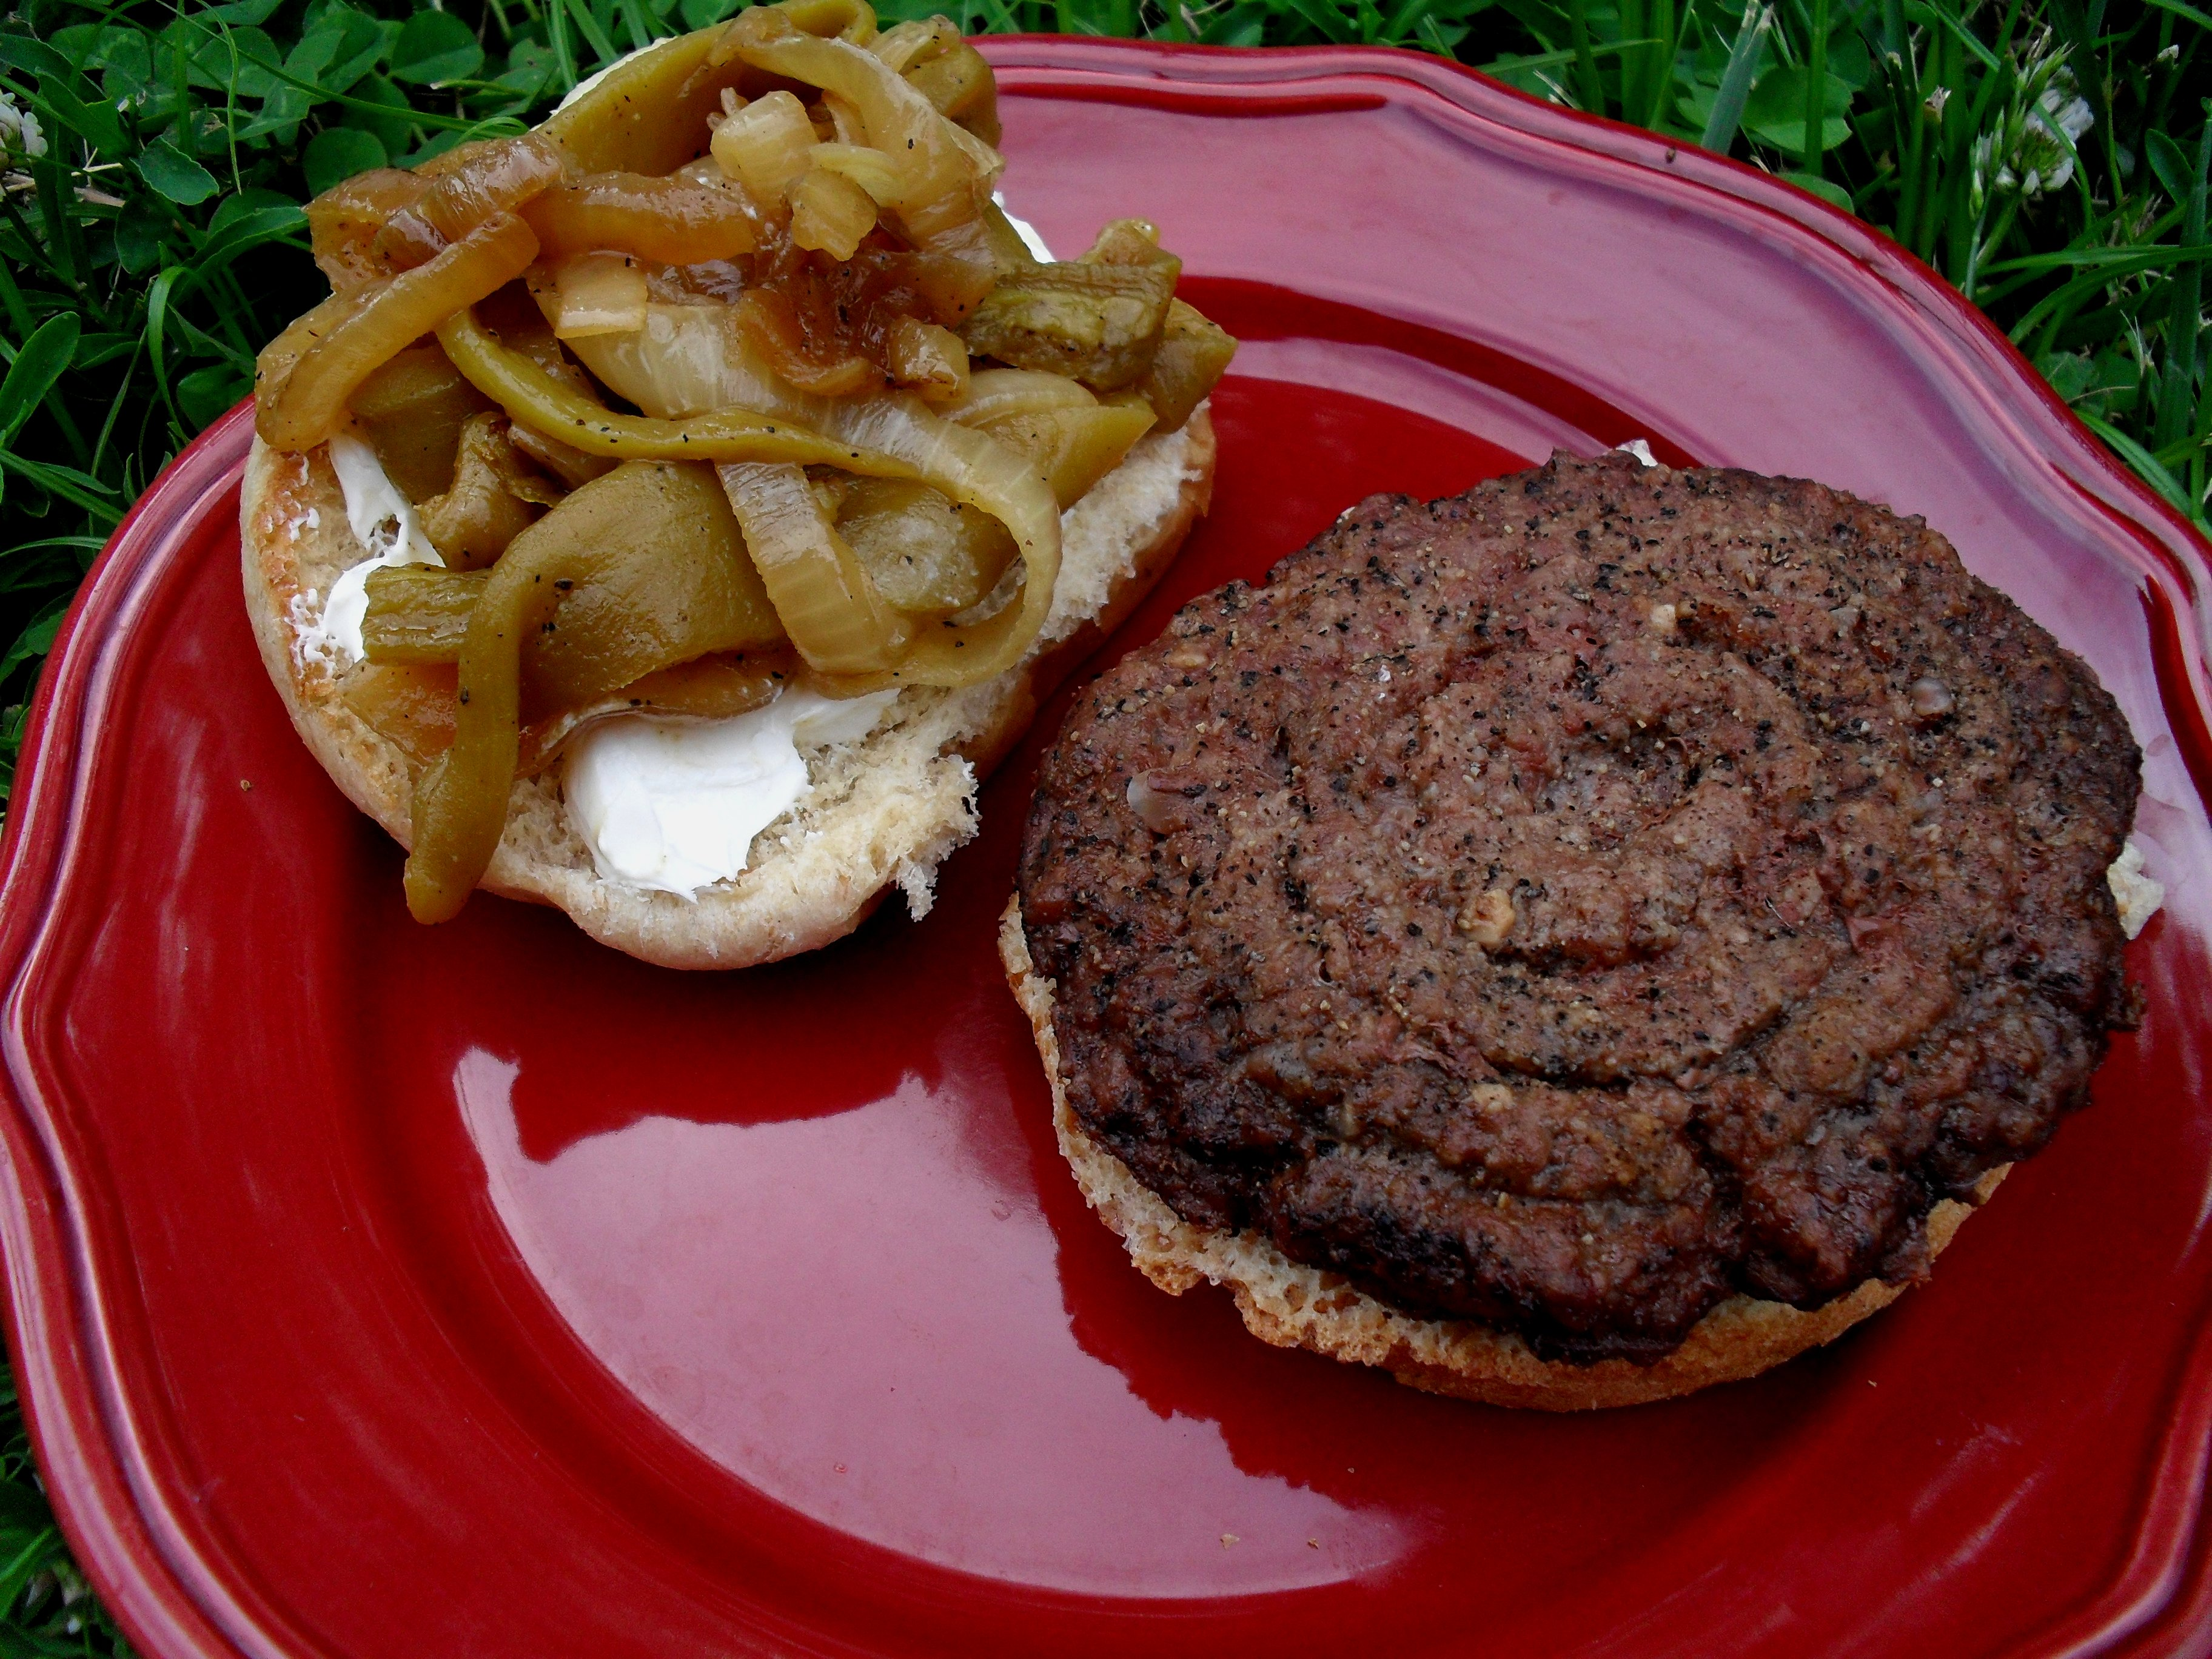 ... June 7, 2011 at 3648 × 2736 in Green Chile and Cream Cheese Burgers